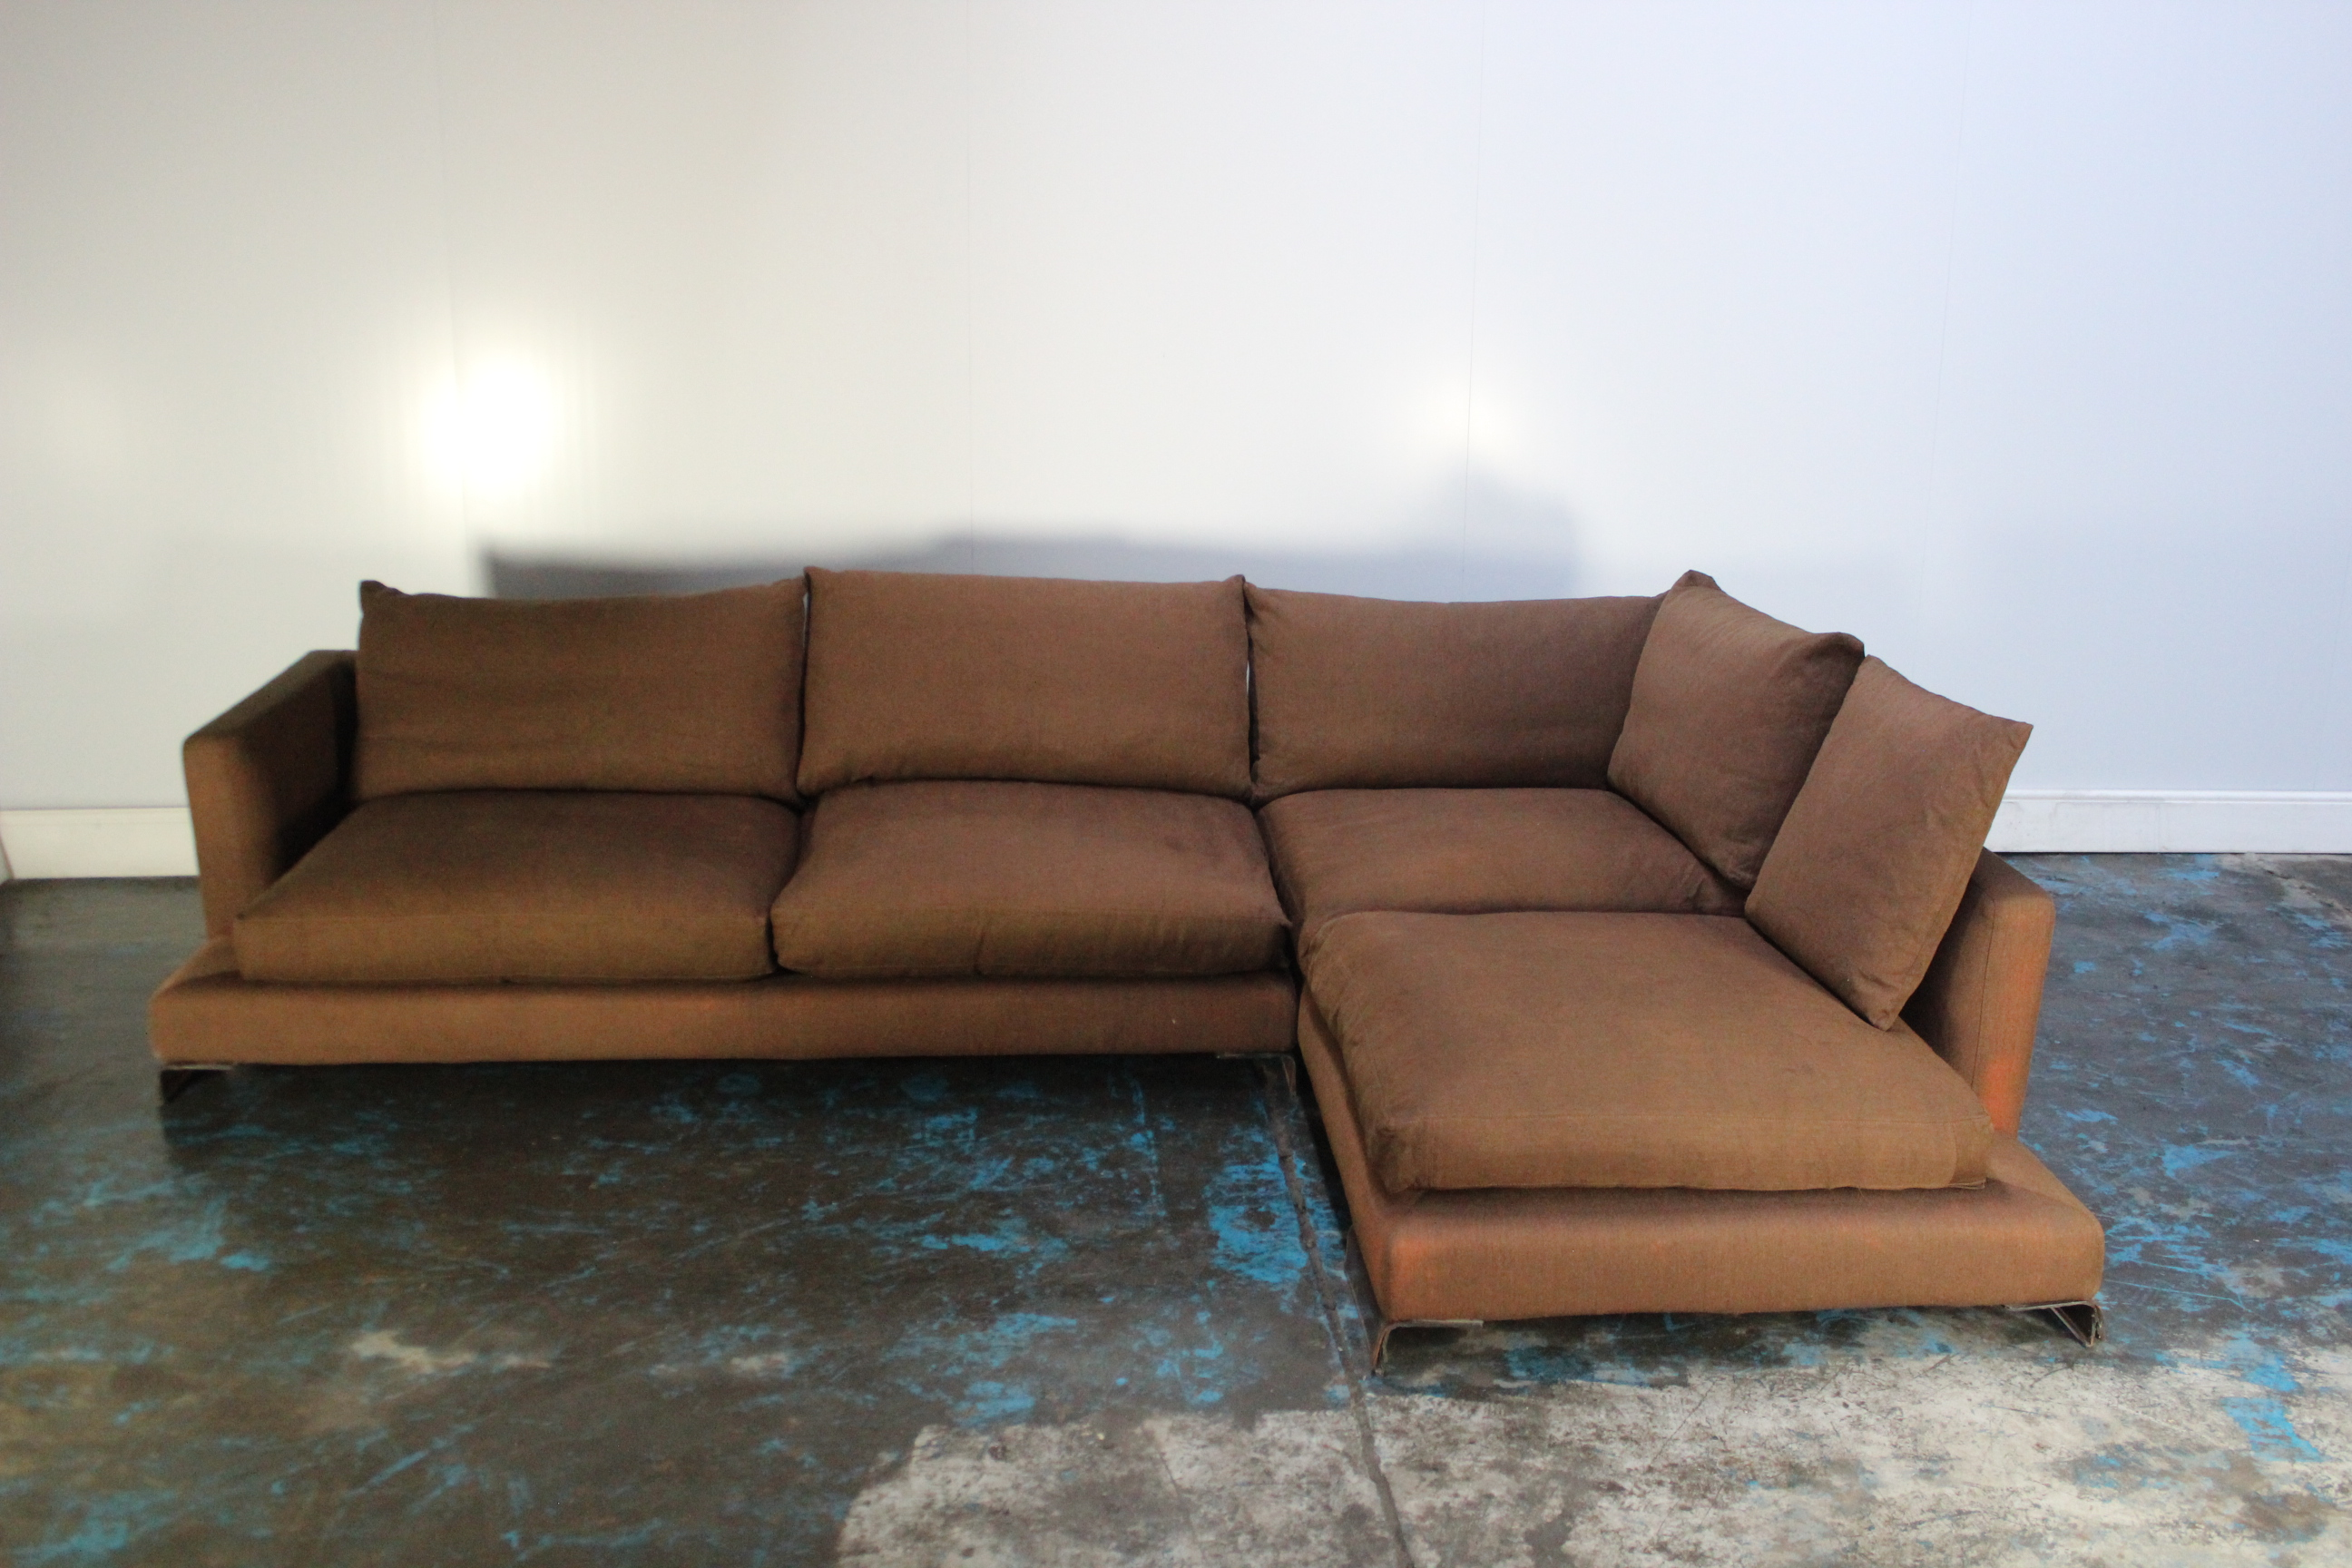 Pleasing Details About Peerless Huge Flexform Long Island Sectional L Shape Sofa In Mid Brown Linen Onthecornerstone Fun Painted Chair Ideas Images Onthecornerstoneorg